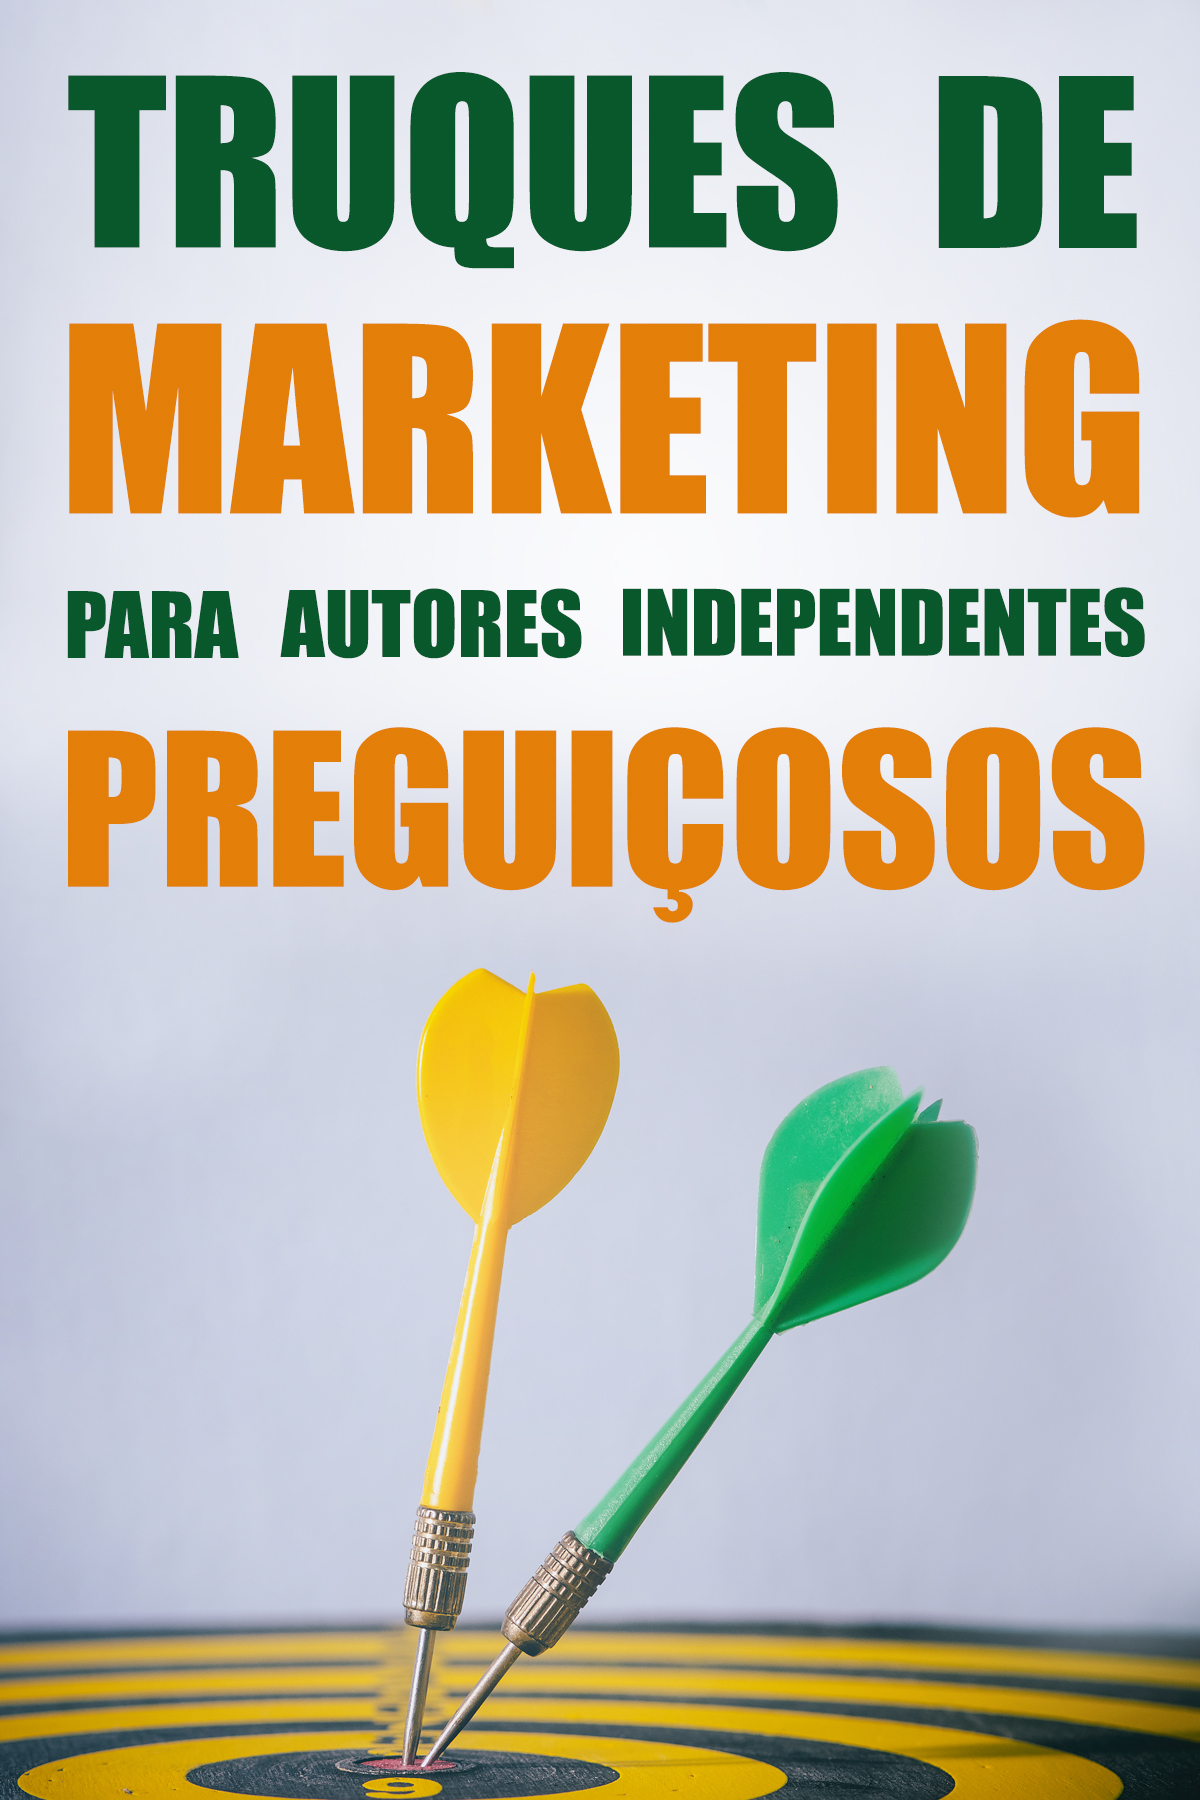 Truques-de-Marketing-para-Autores-Preguiçosos